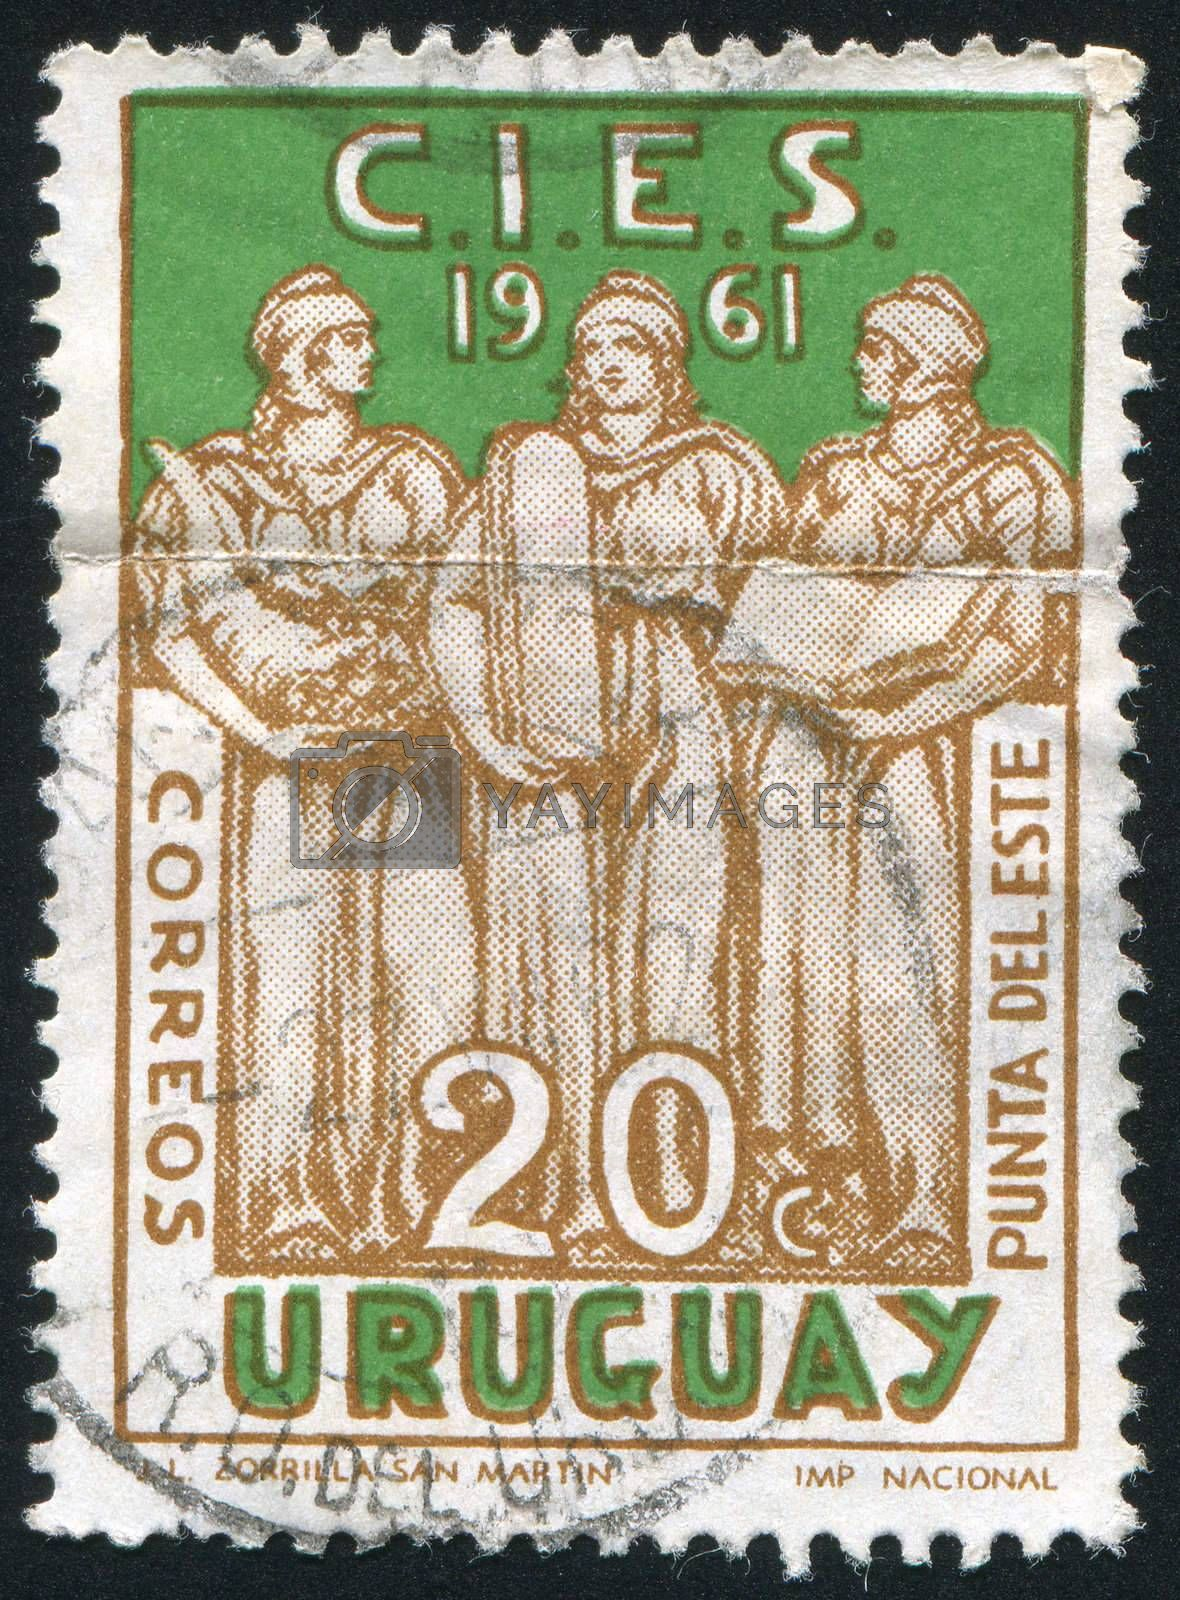 URUGUAY - CIRCA 1961: stamp printed by Uruguay, shows Sculpture Welfare, Justice and Education, circa 1961